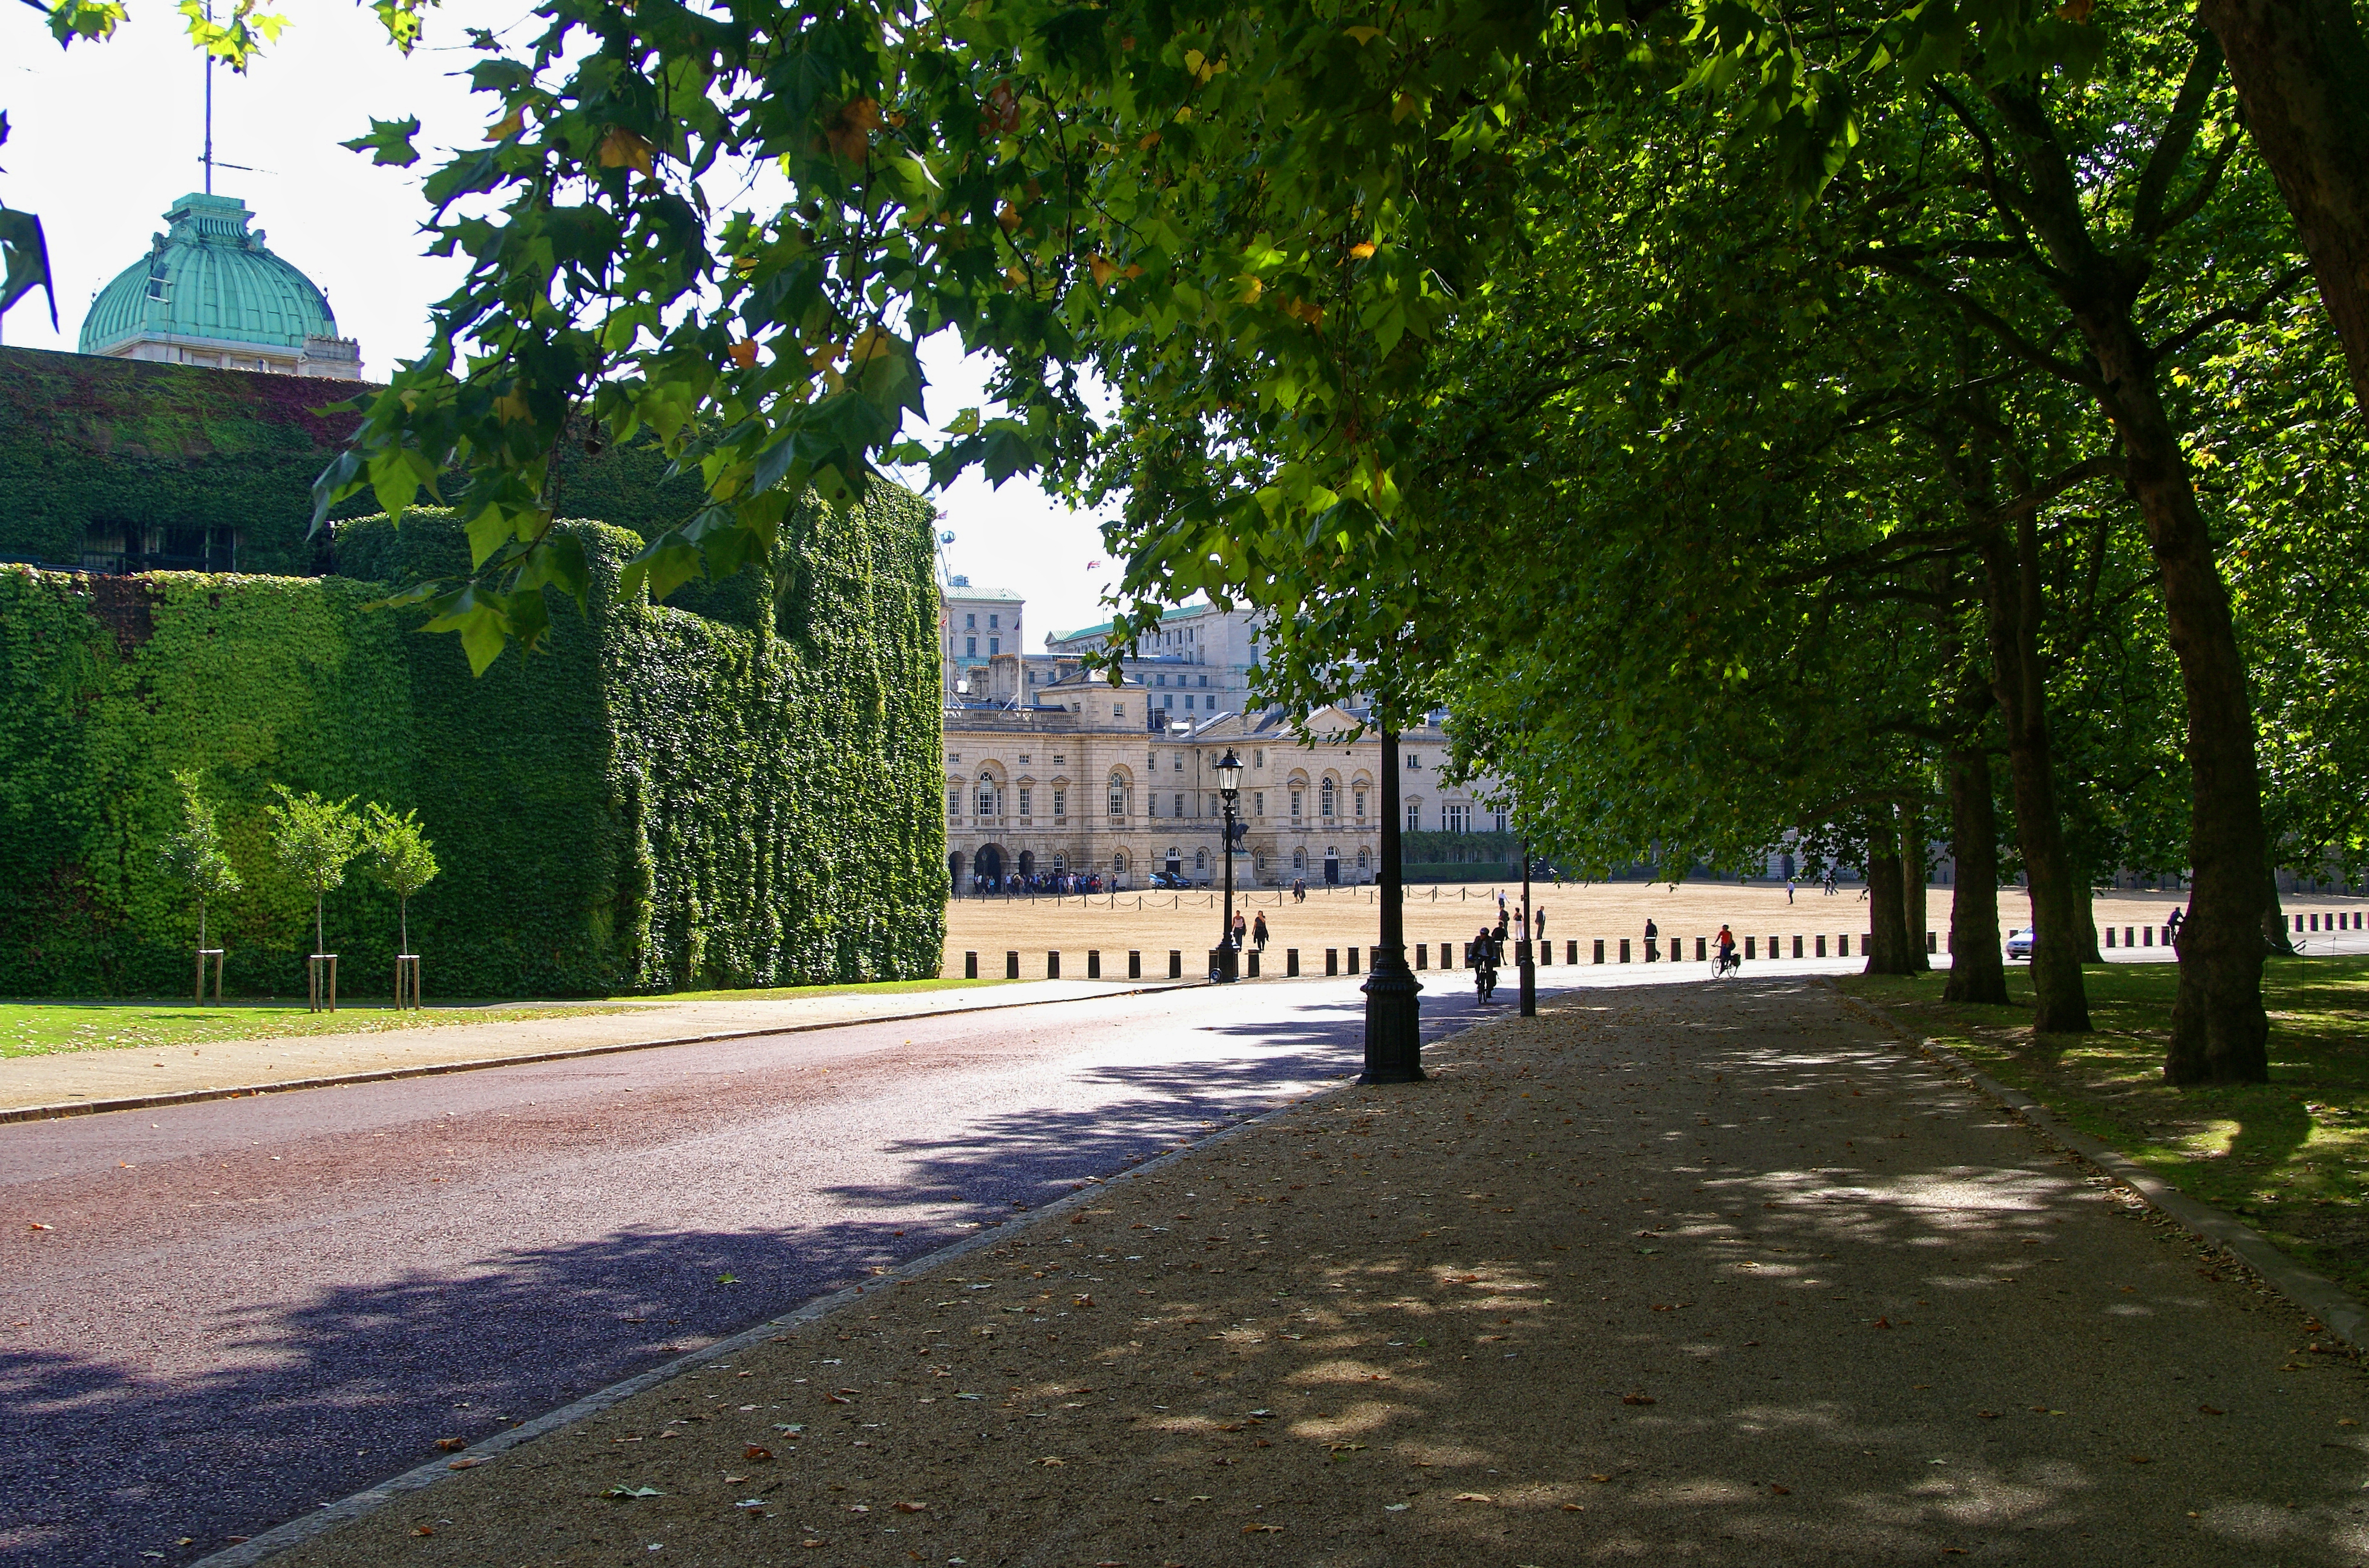 File:London - Horse Guards Road - View SE on Admiralty Citadel